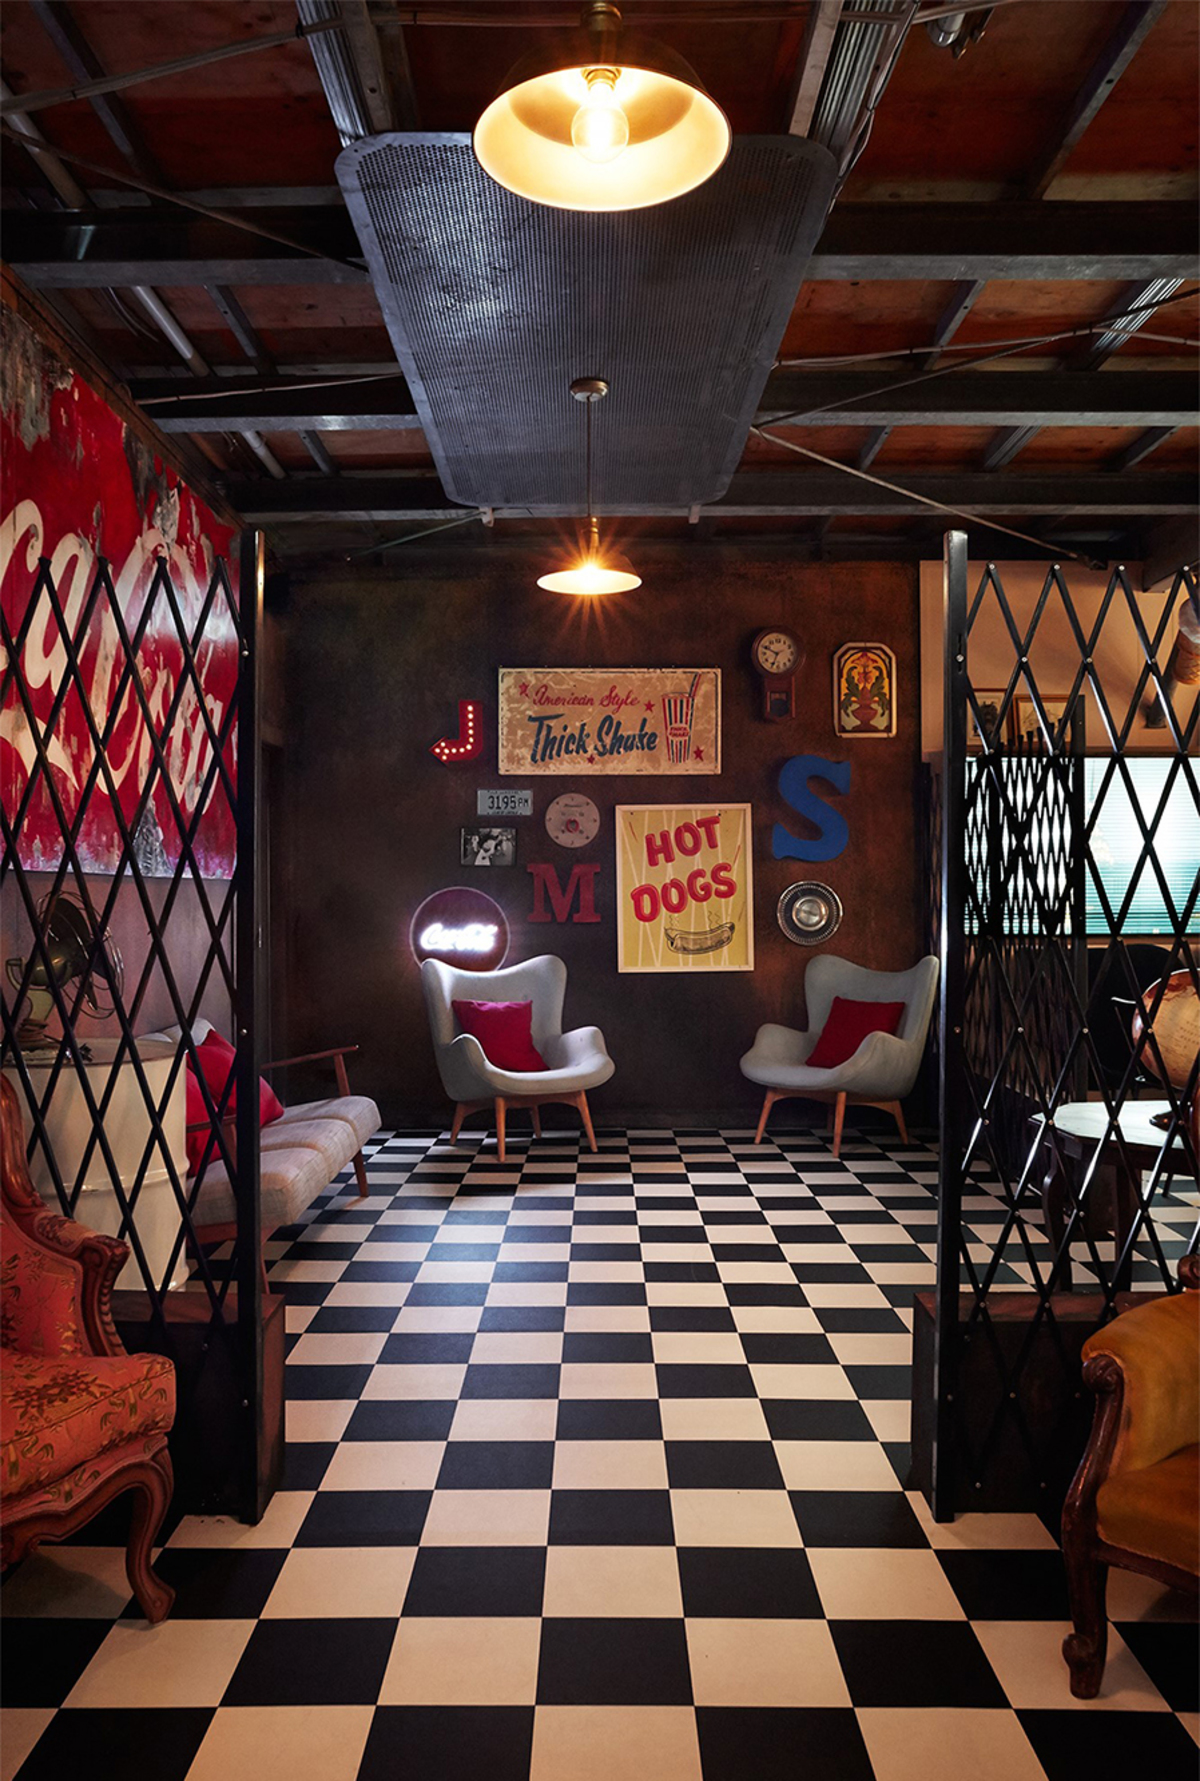 the black and white checker floor past the retro bar and through the rusty gates,